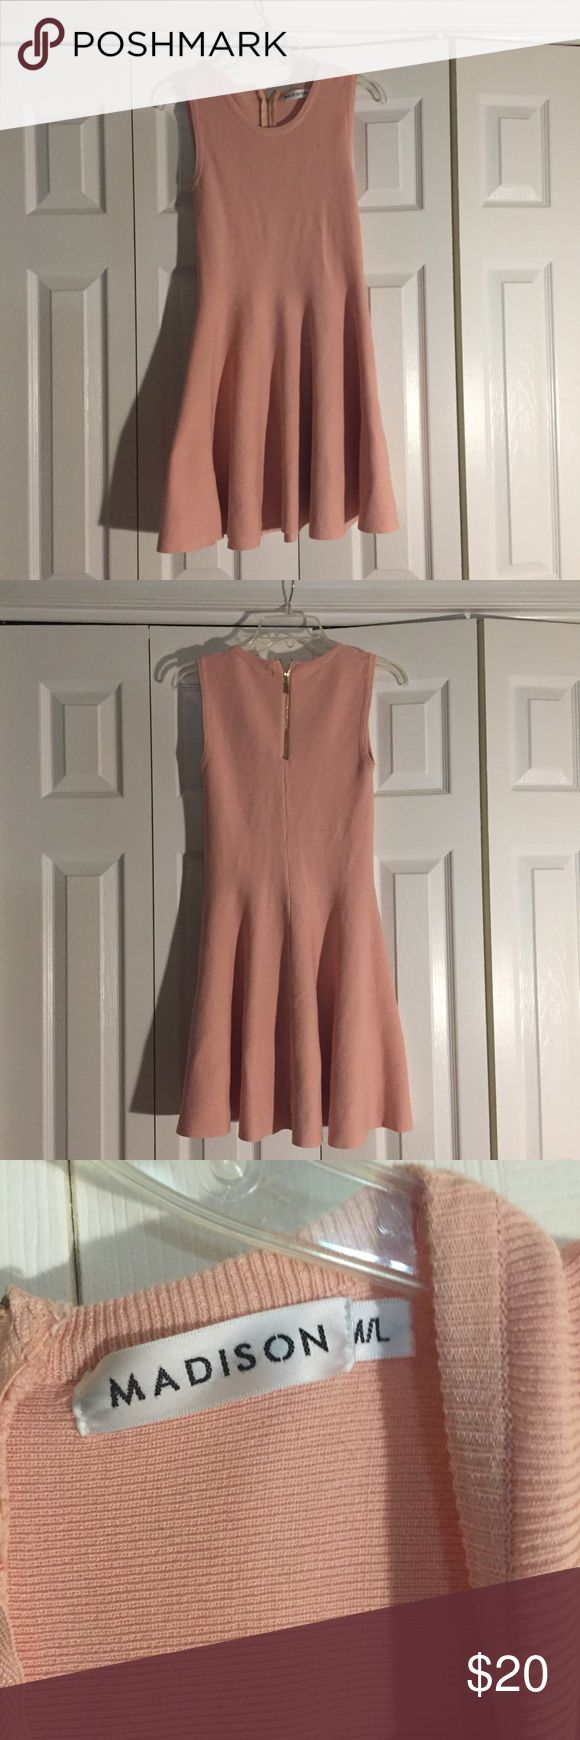 ********* Purchased in Paris, Madison dress! Hey ladies and girls, I purchased this gorgeous light pink dress from a shop in Paris. It was my first day in the city of lights and I saw this and fell in love with it. I got back to my room and realized it was a size m/l. I totally forgot where the little boutique was. I have no idea how much this dress is truely worth but the aveux used on this is thick and very nice! This is a m/l so if you're that size have fun in a paresian dress, which I am…